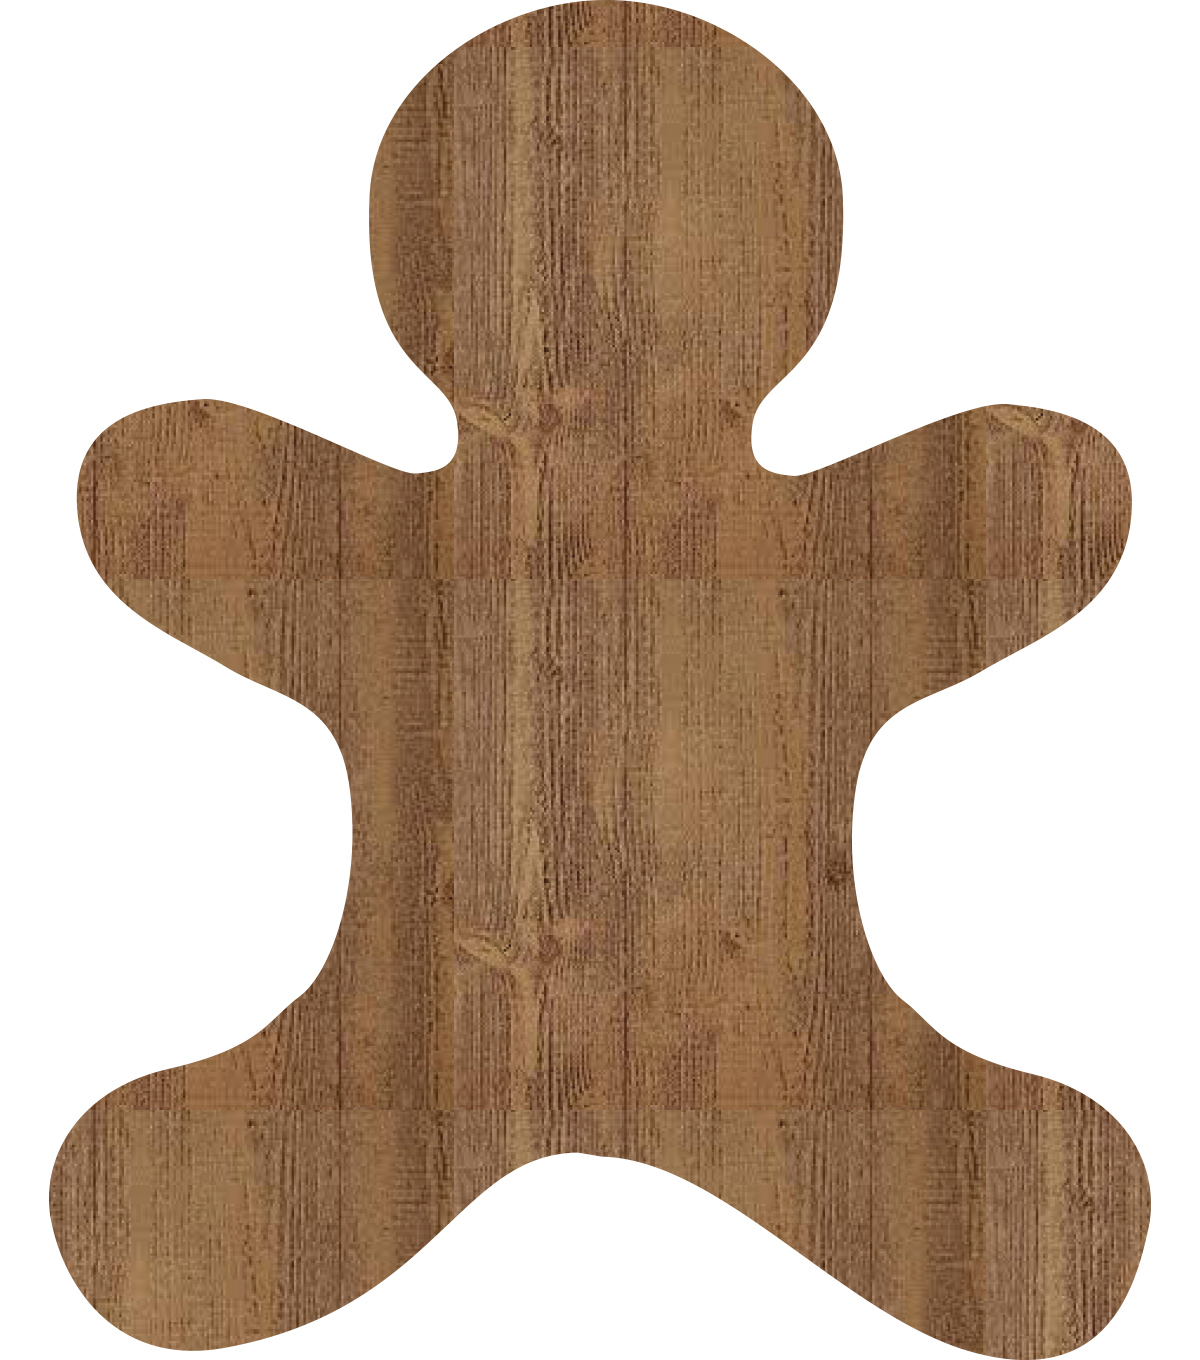 Decorative Wood Plank-Gingerbread